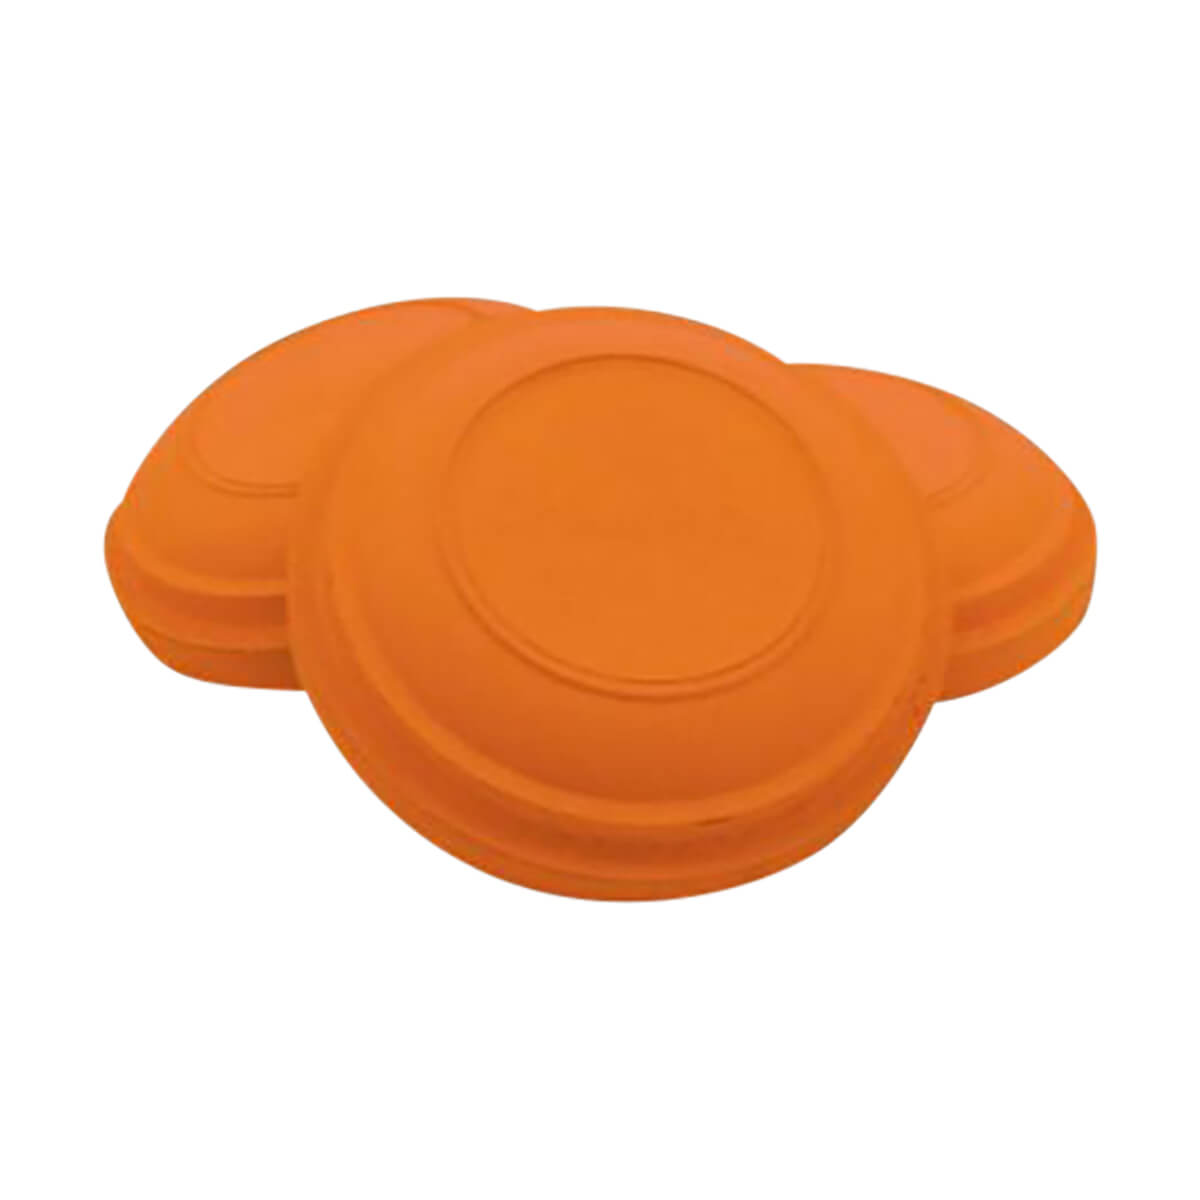 True Flight Dome Clay Targets 135 Pack